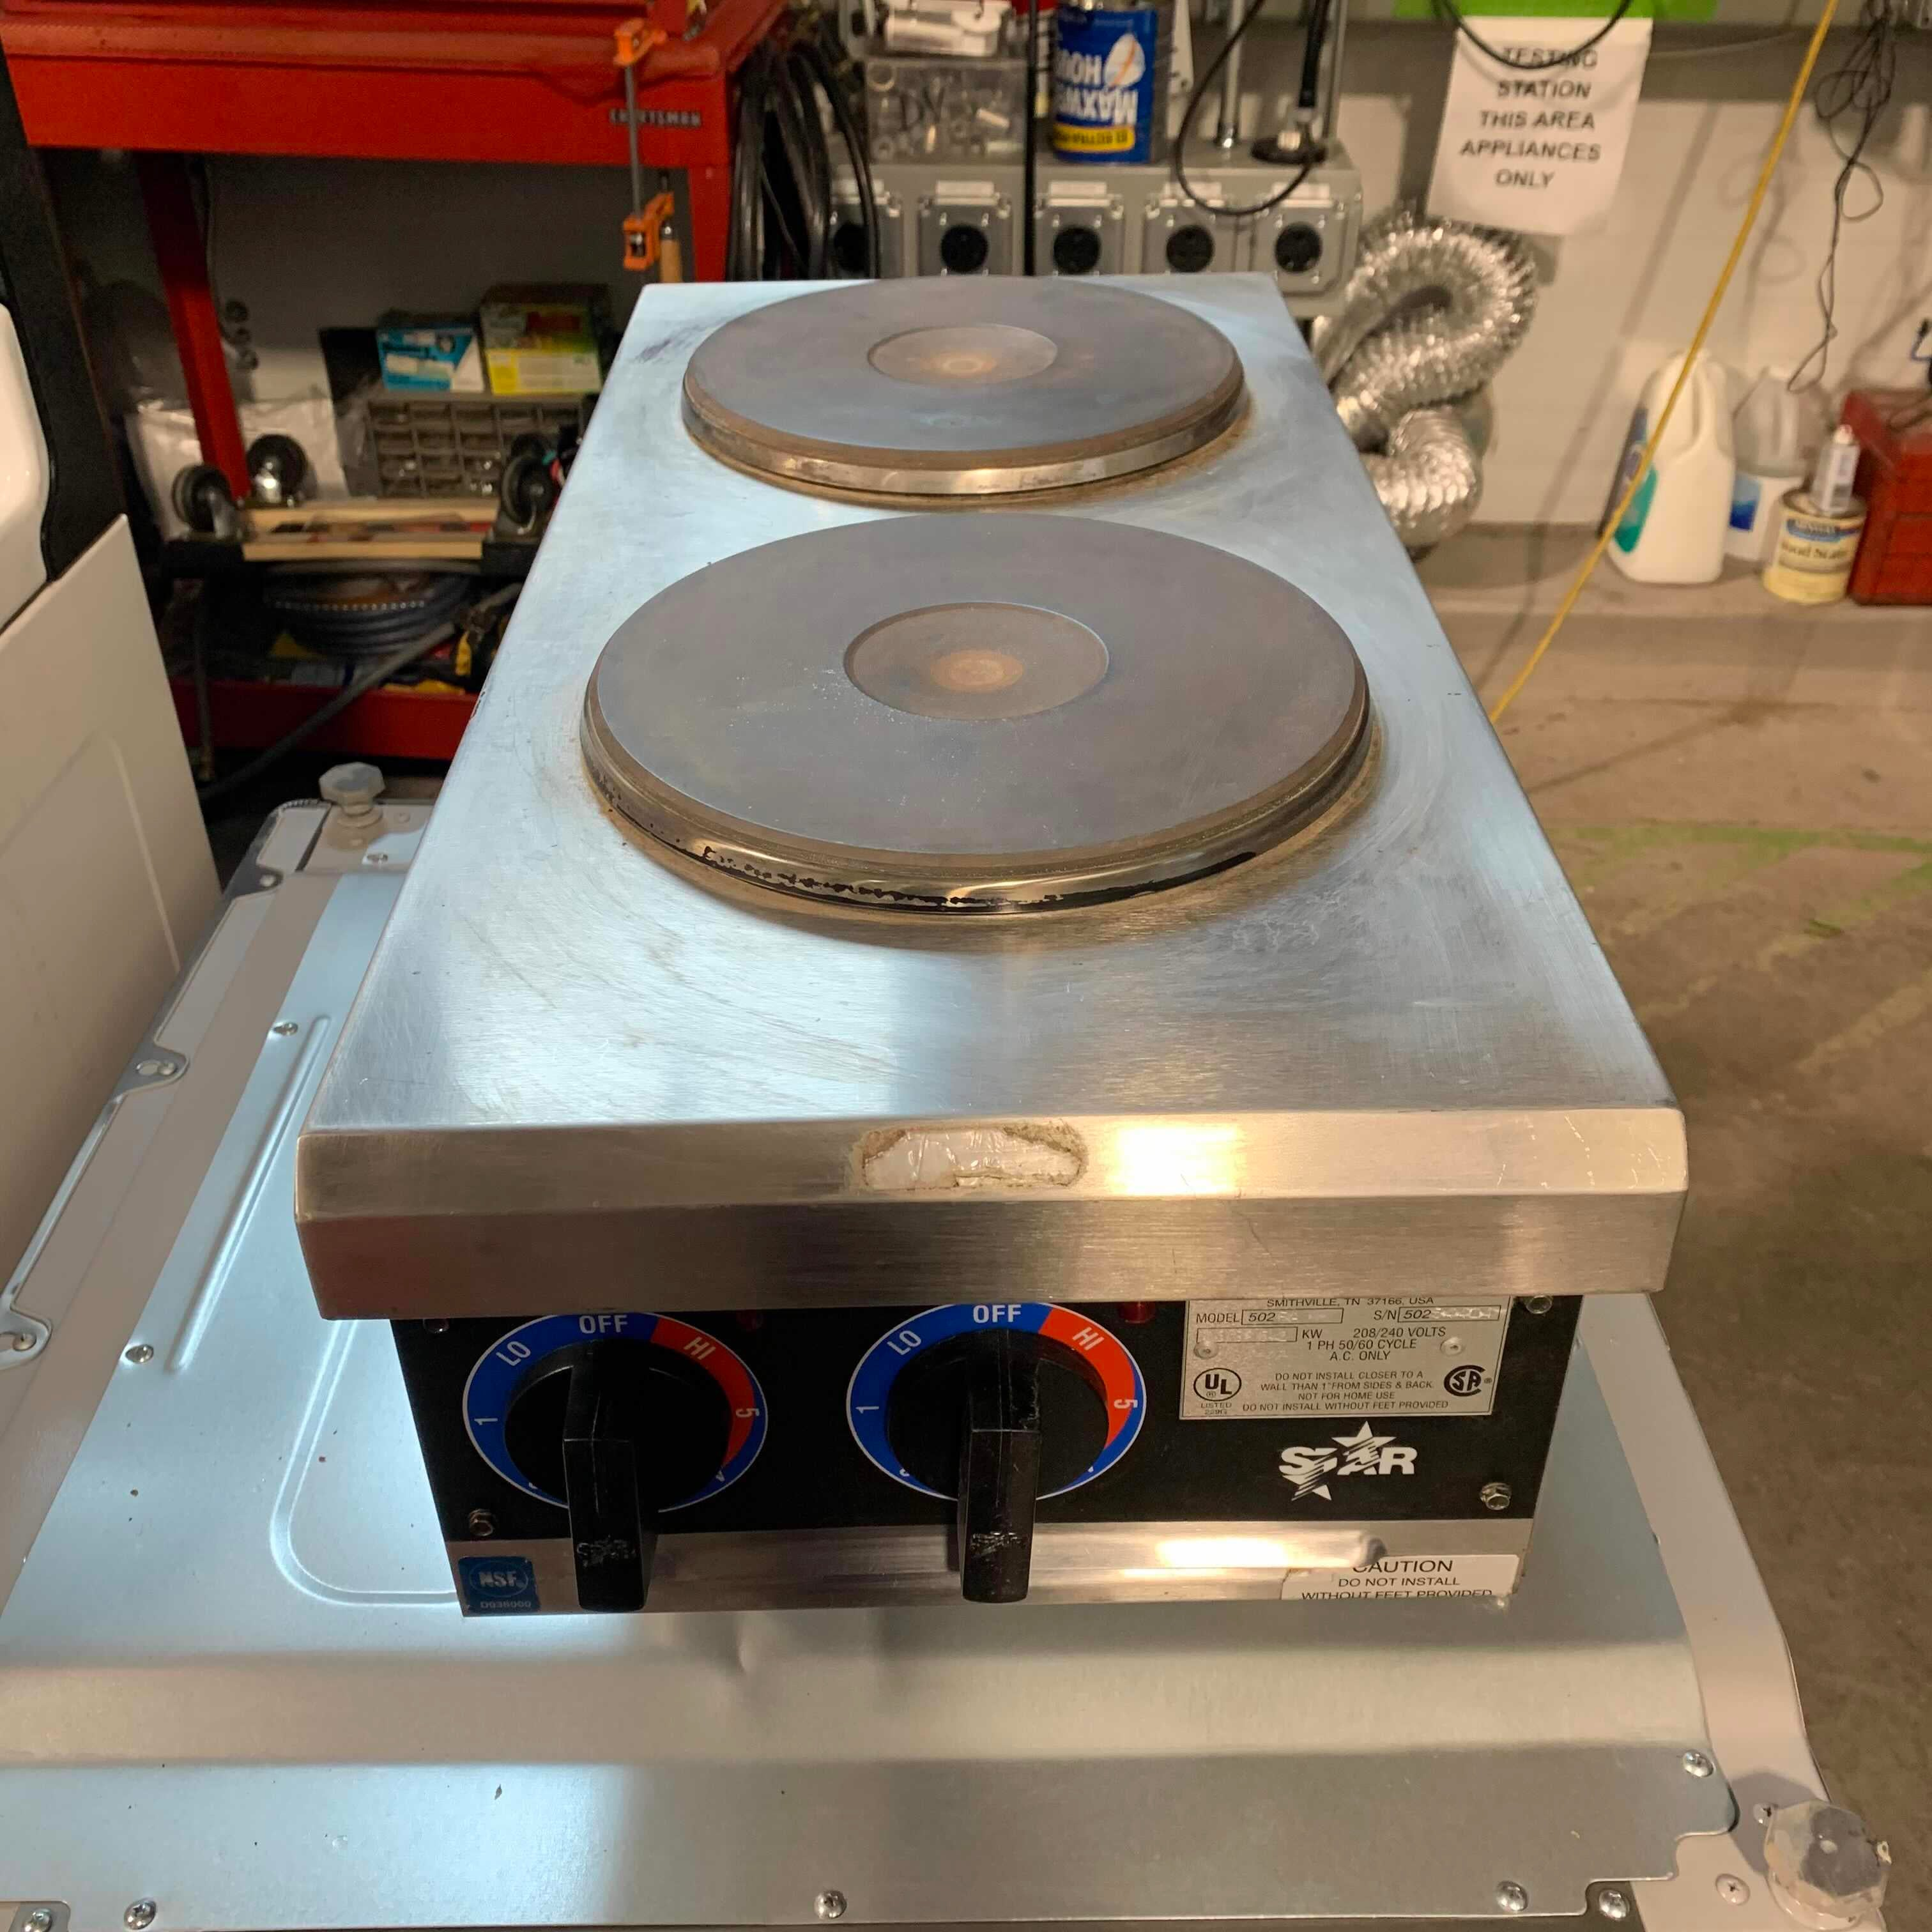 "12"" x 28 1/4"" x 13"" Star 502 2 Burner Hot Plate (Cannot Test)"